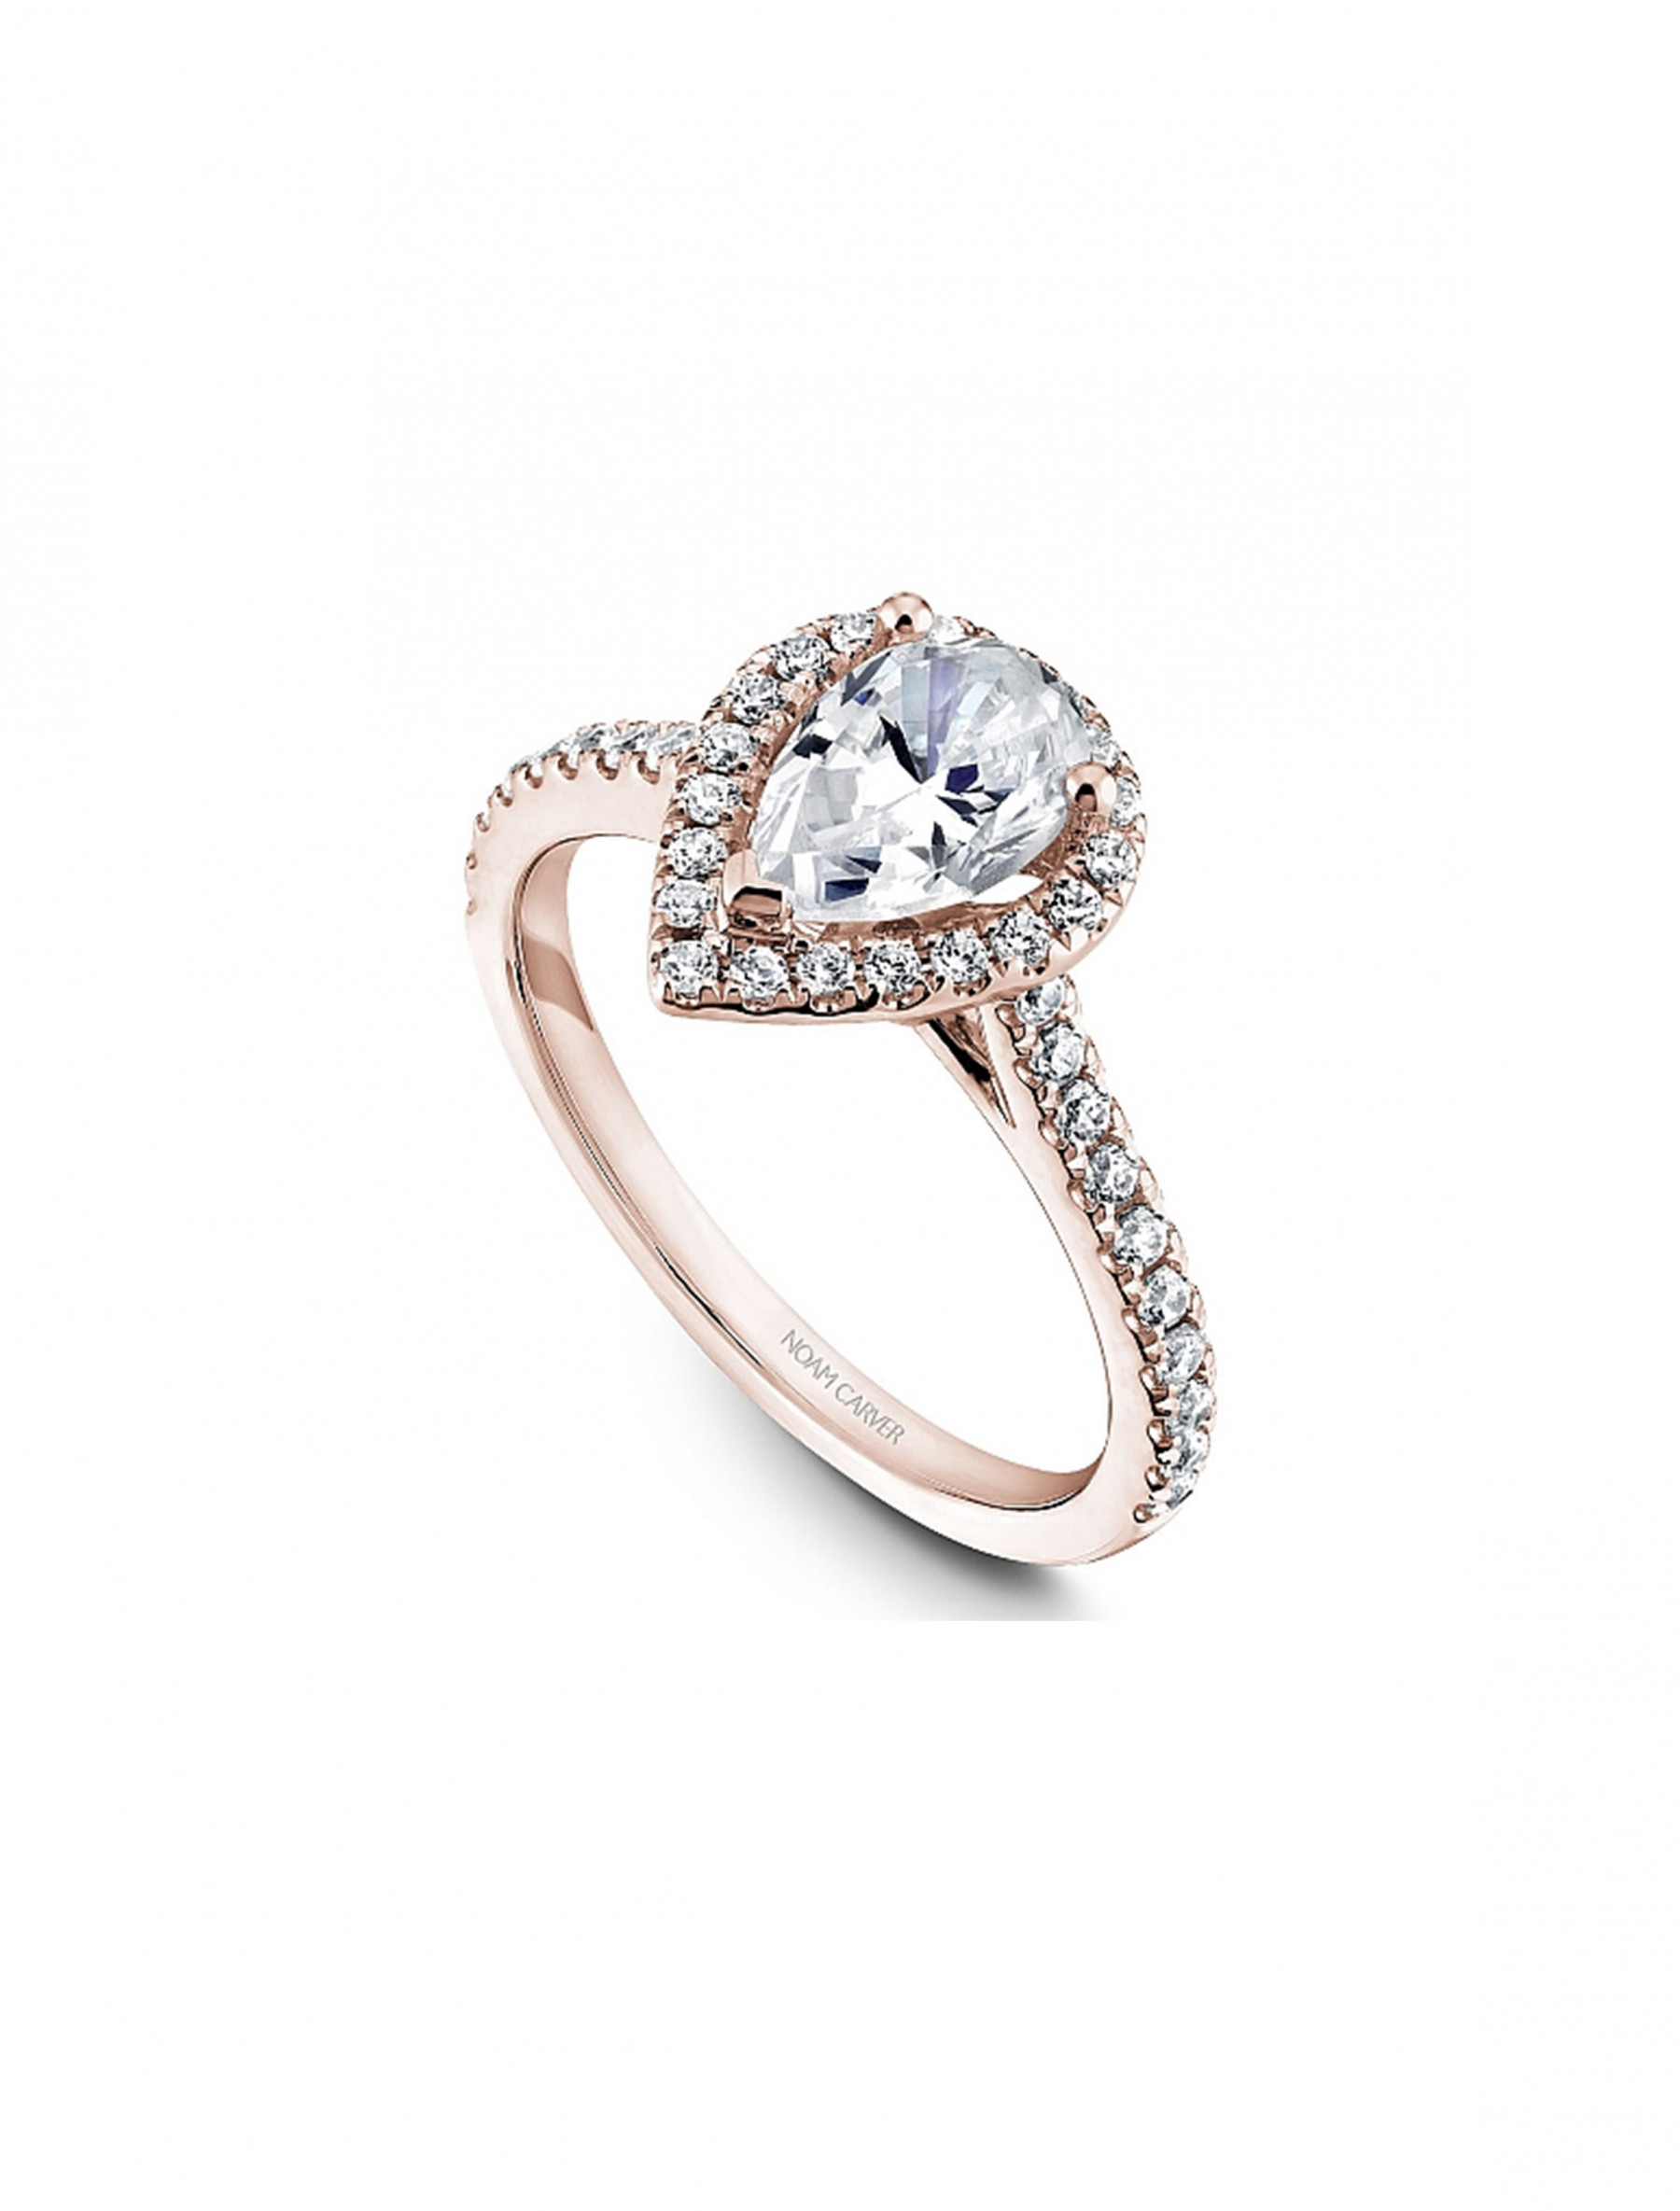 Noam Carver Pear Pave Diamond Halo Engagement Ring Setting in 14K Rose Gold angle view